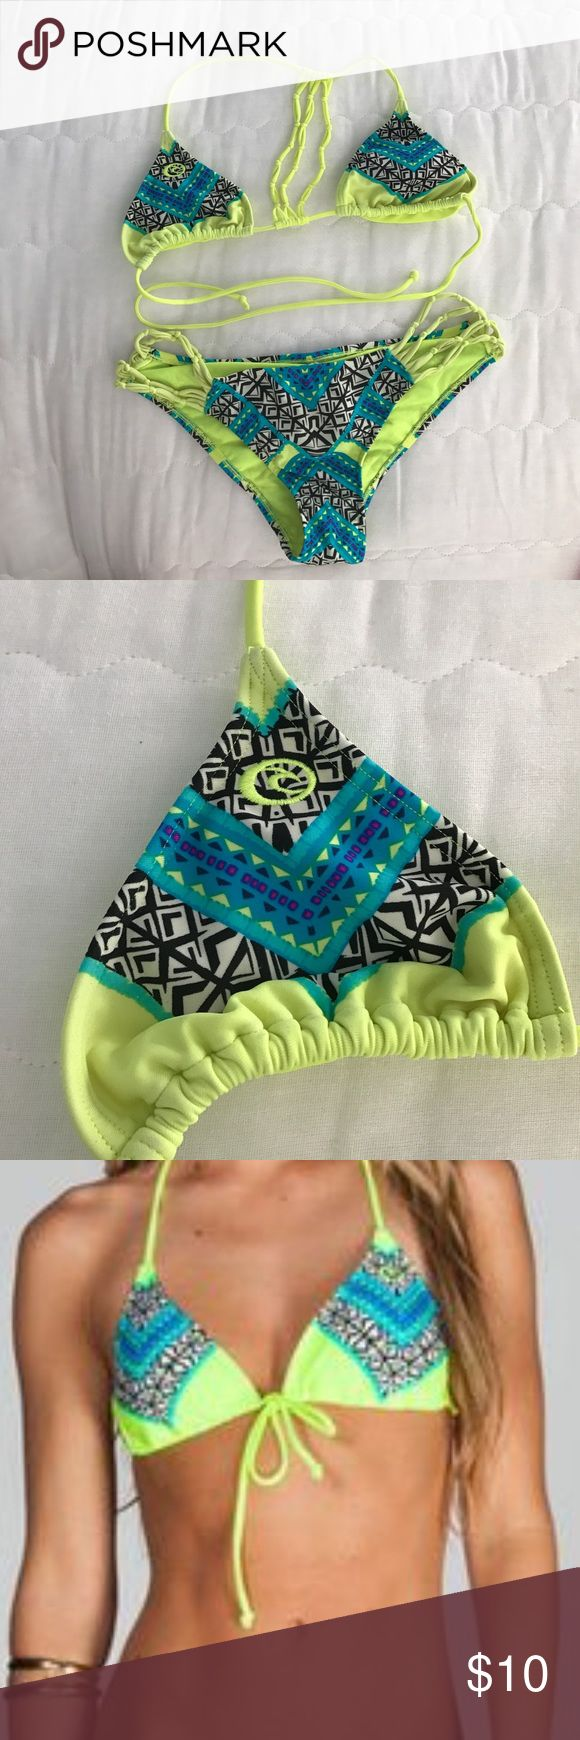 Rip curl triangle bikini top and bottom This bikini top ties in the front and the top and bottoms sport an Aztec mixed pattern with neon green, blue, purple, and black. Rip Curl Swim Bikinis